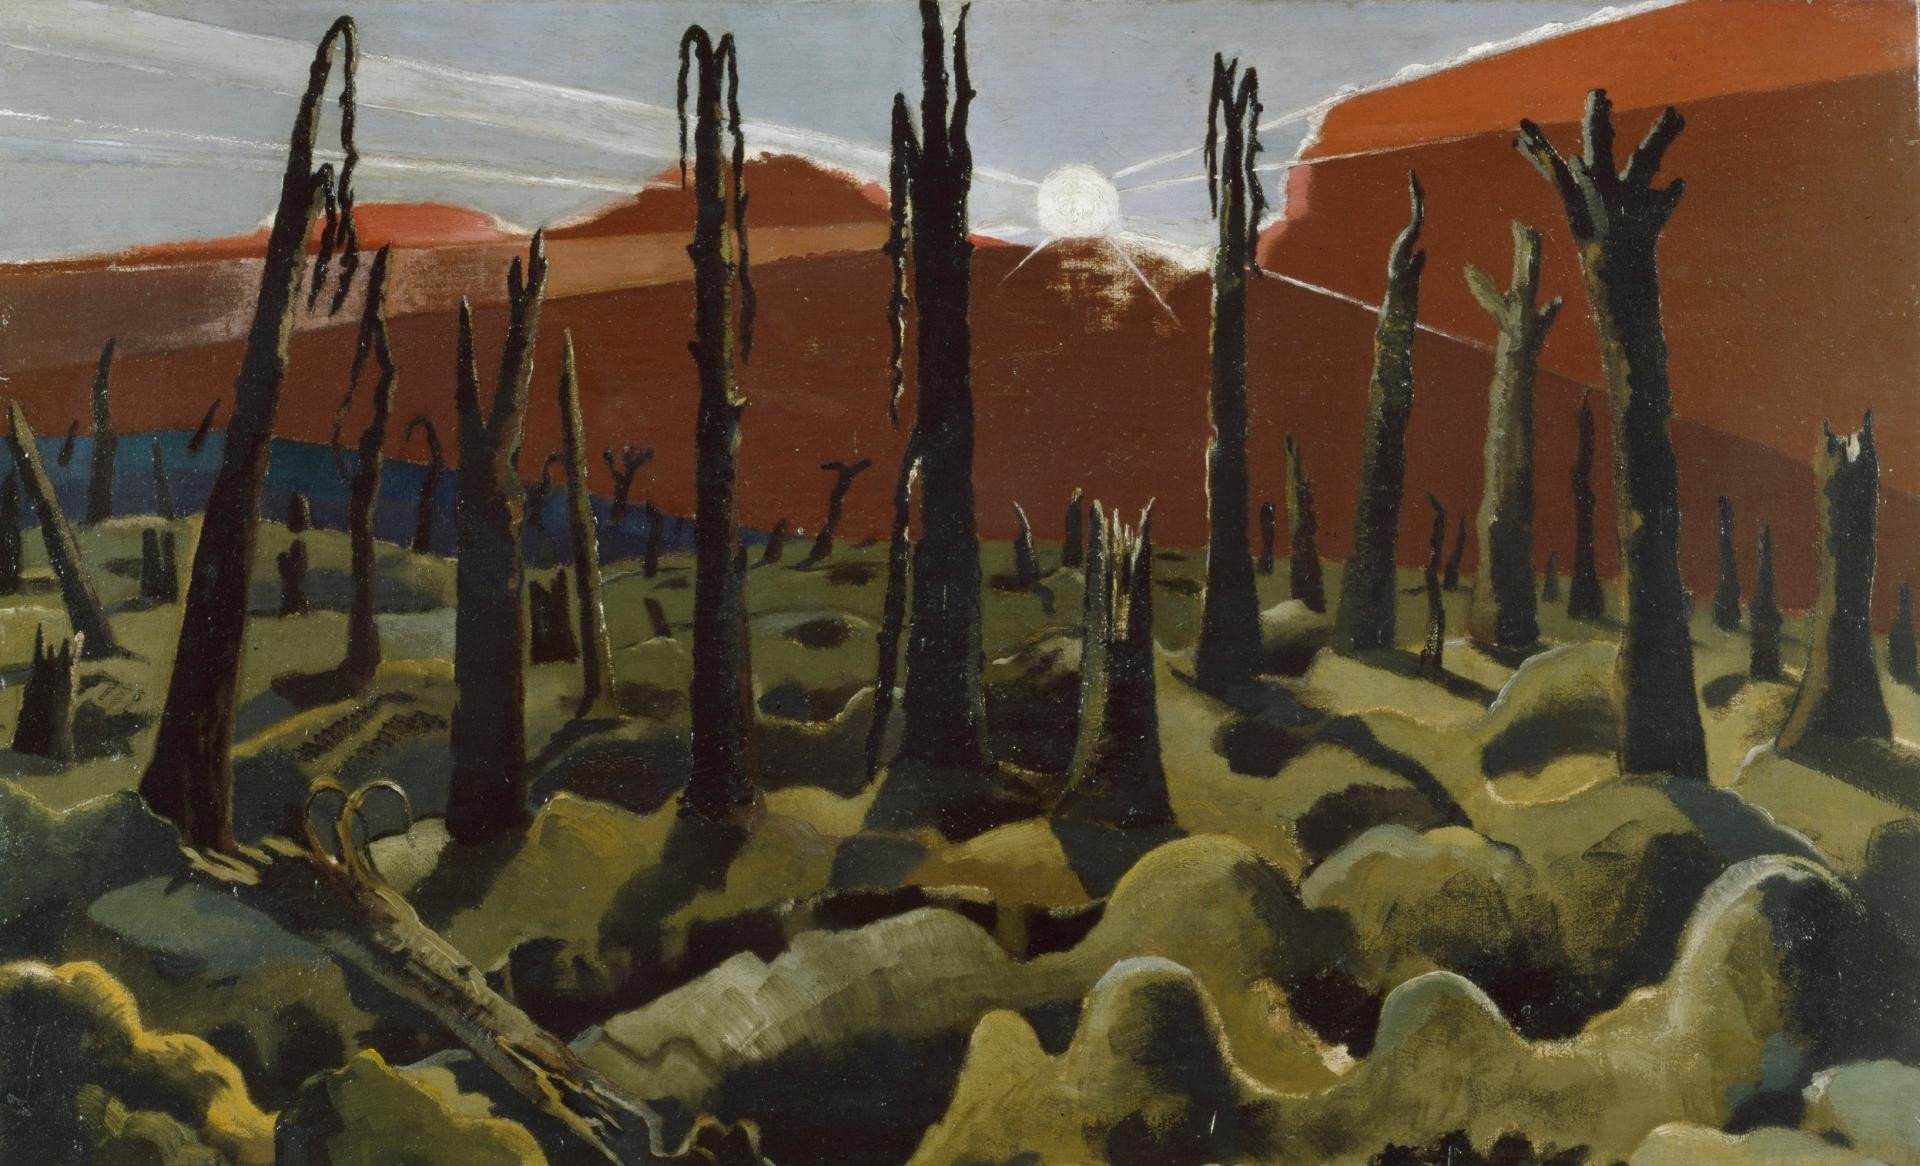 jm hardwood floors illinois of imperial war museums for we are making a new world by paul nash iwm art 1146